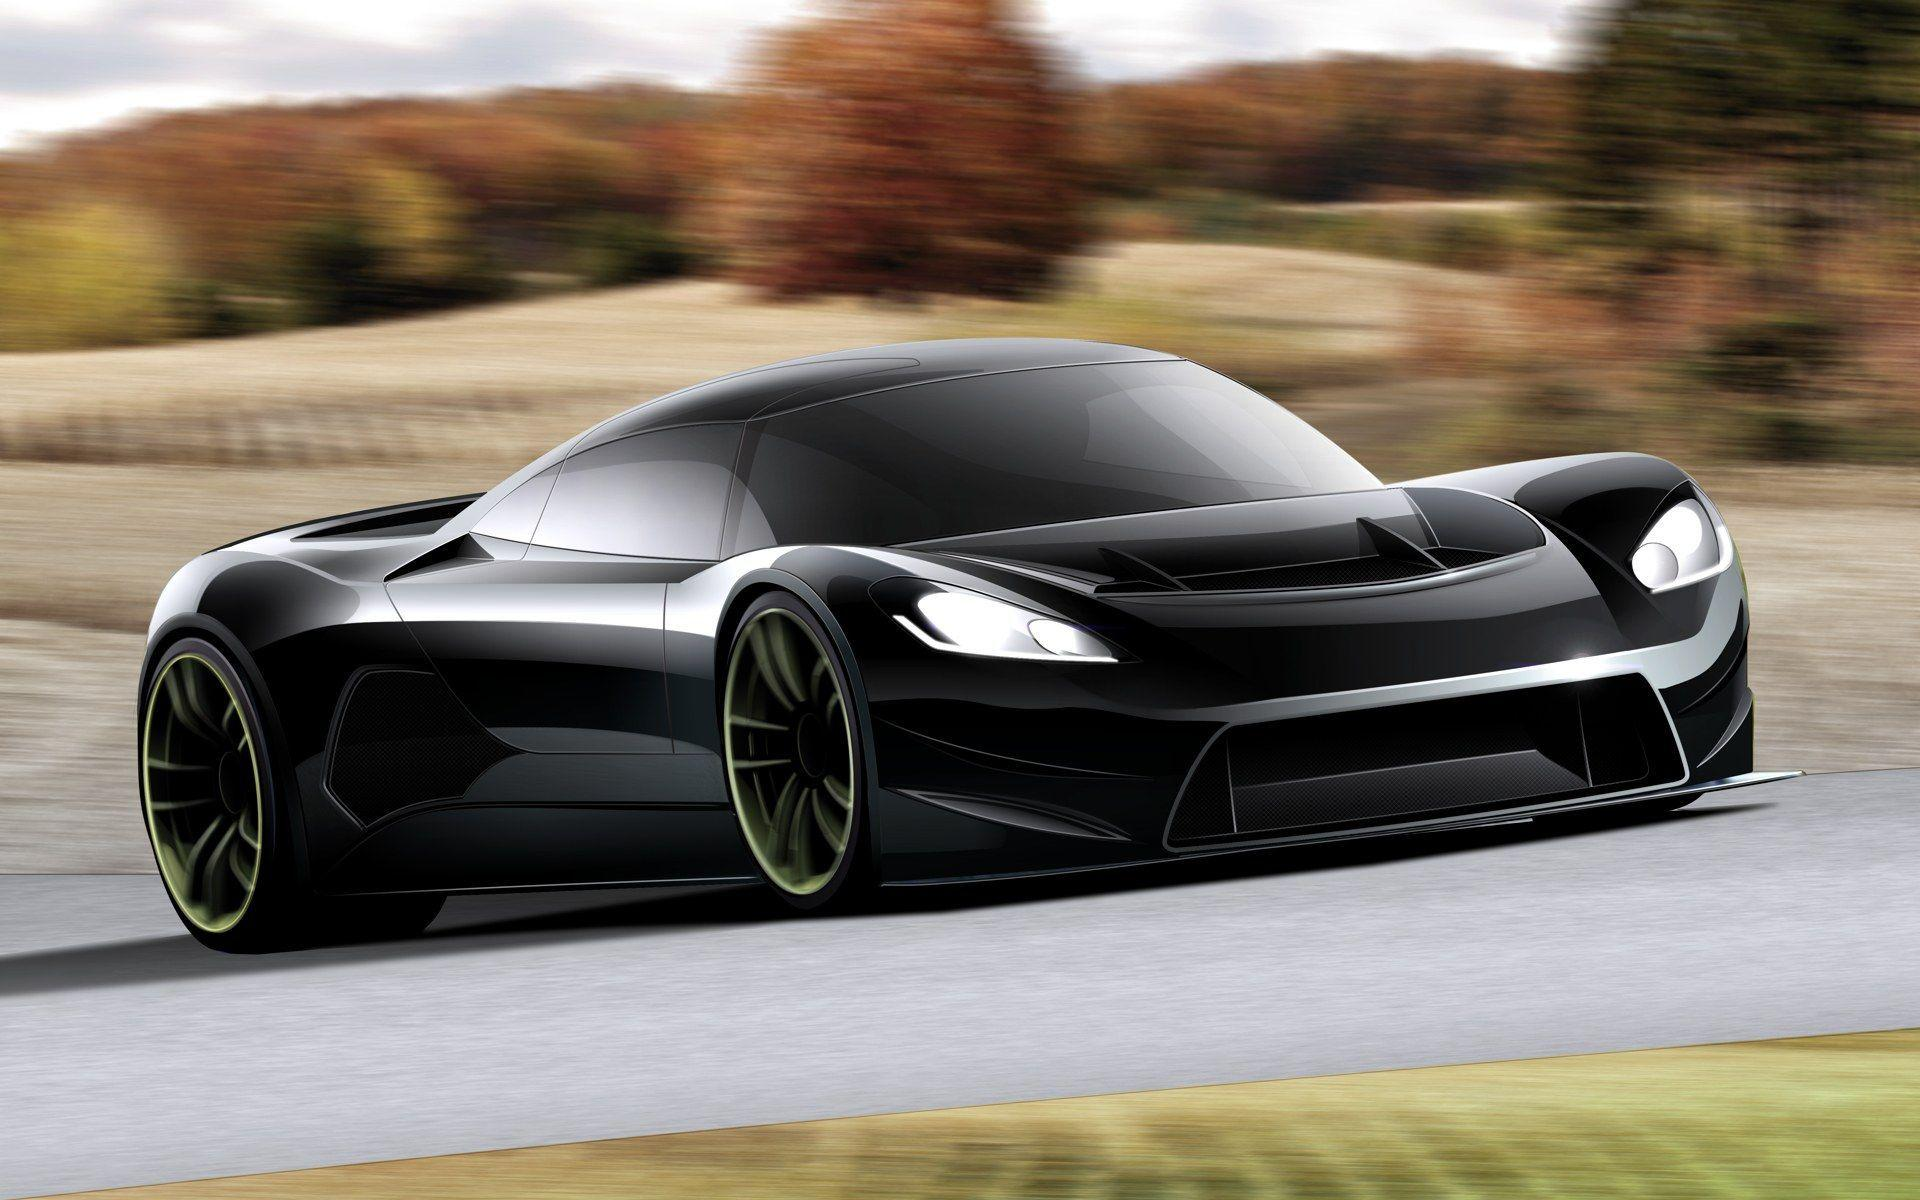 Concept Super Car Million Wallpaper Full HD | High Quality PC ...